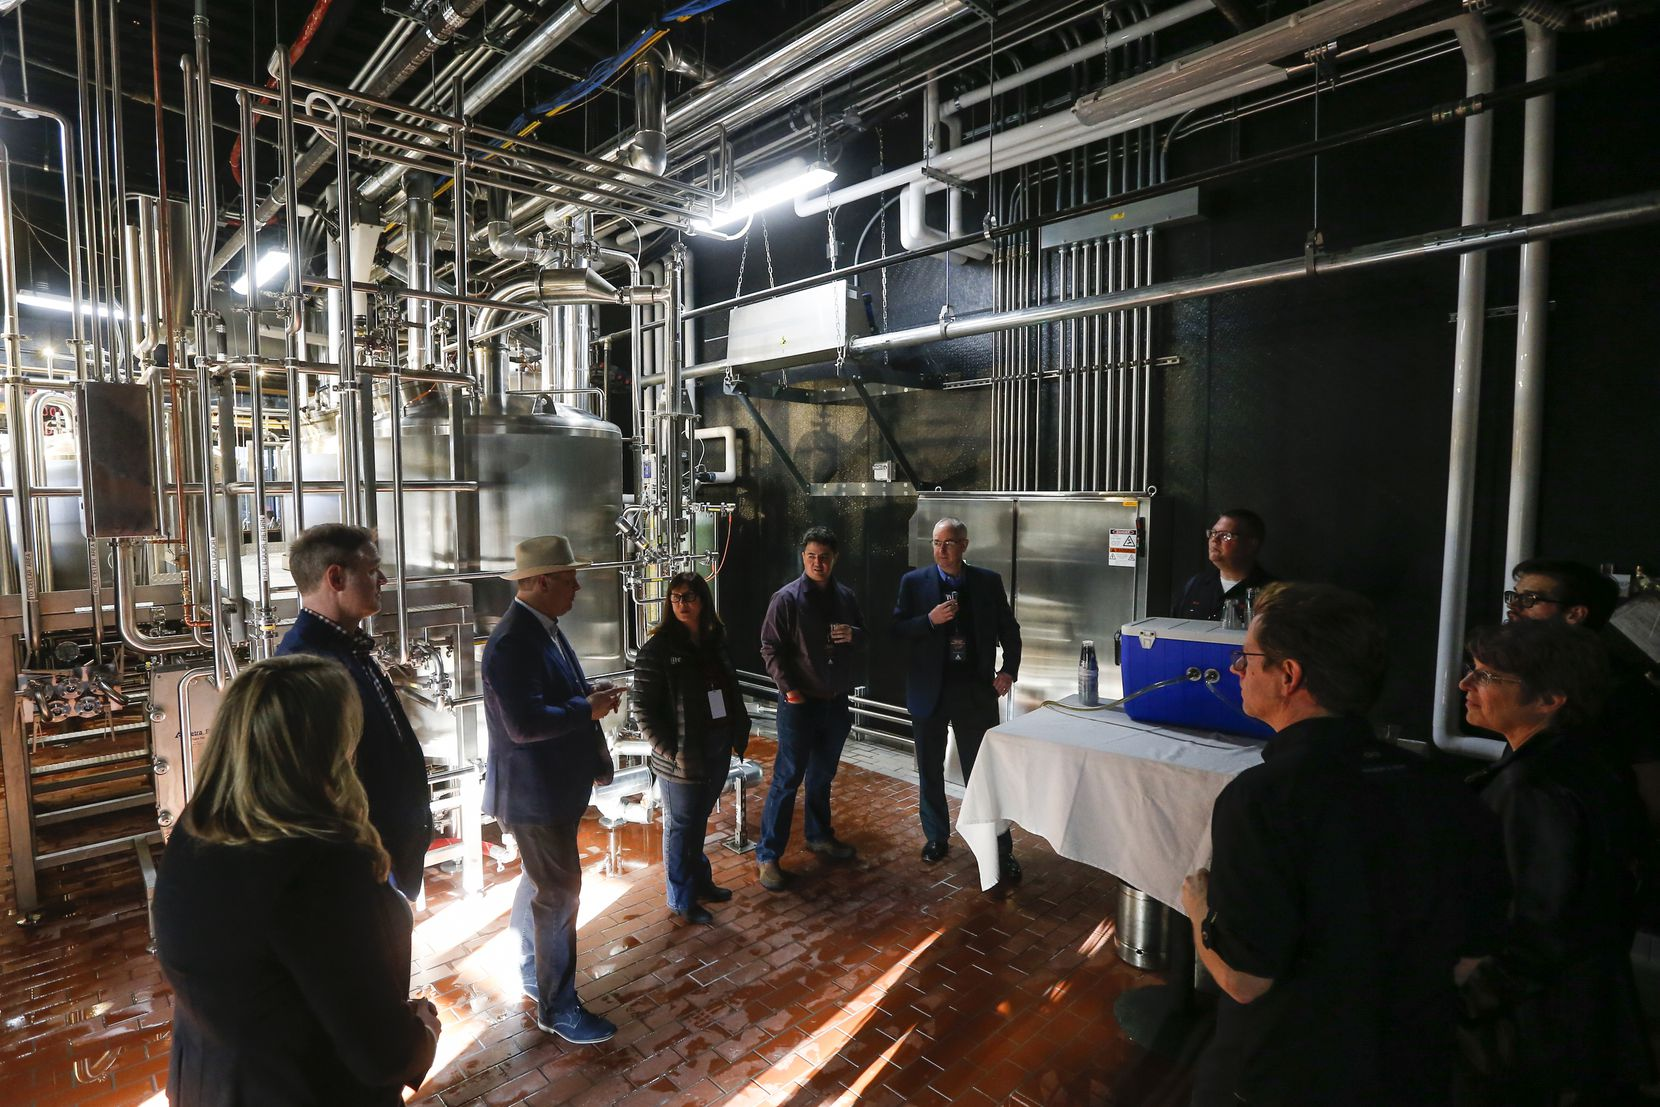 A group tours during an open house of Revolver Brewing BLDG 5, a new working brewery at Texas Live.